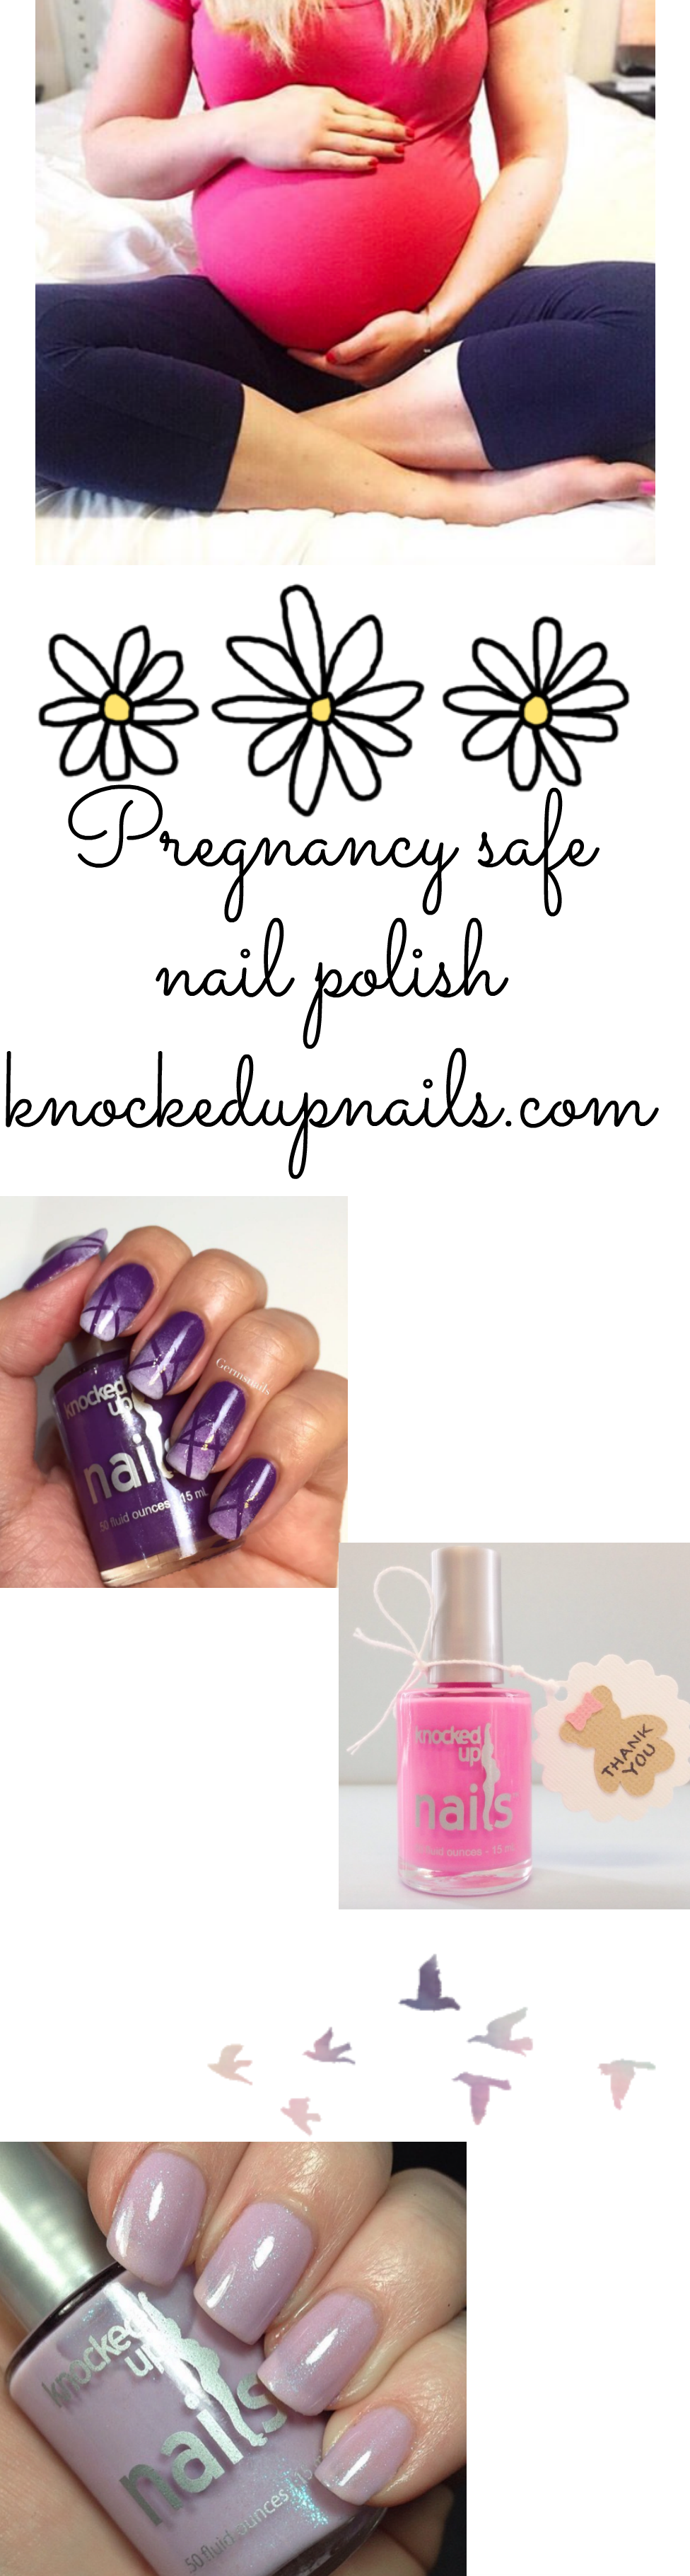 Knocked Up Nails - Pregnancy safe nail polish! | Knocked Up Nails ...